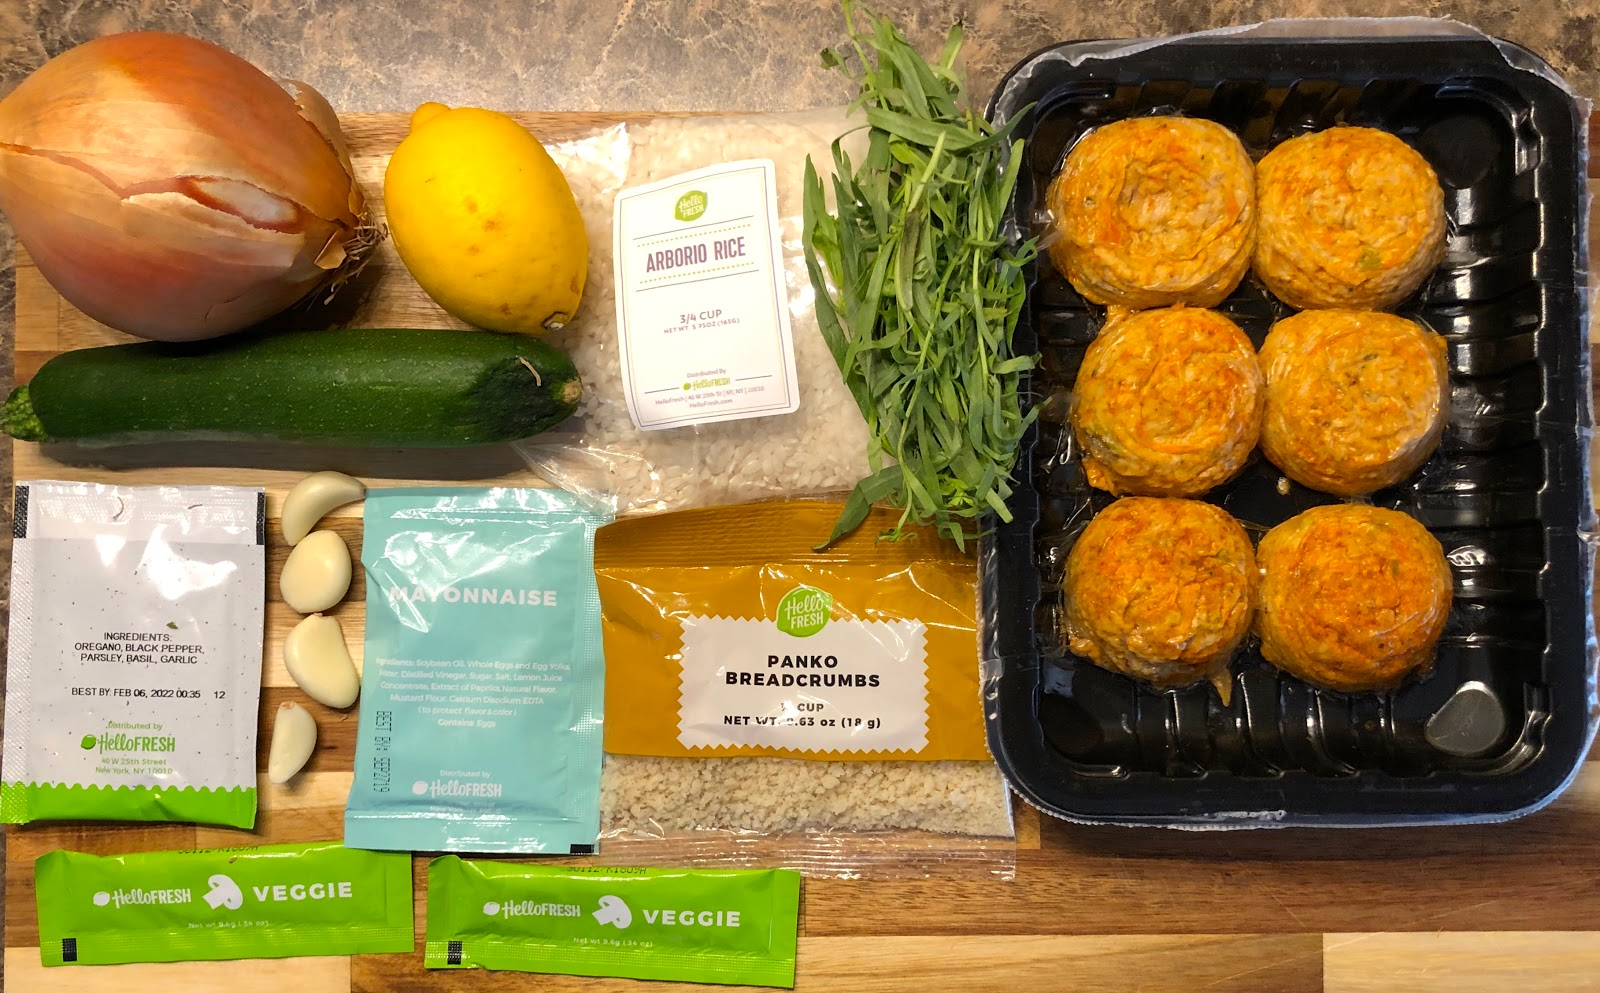 A Biased View of Hello Fresh Vegan